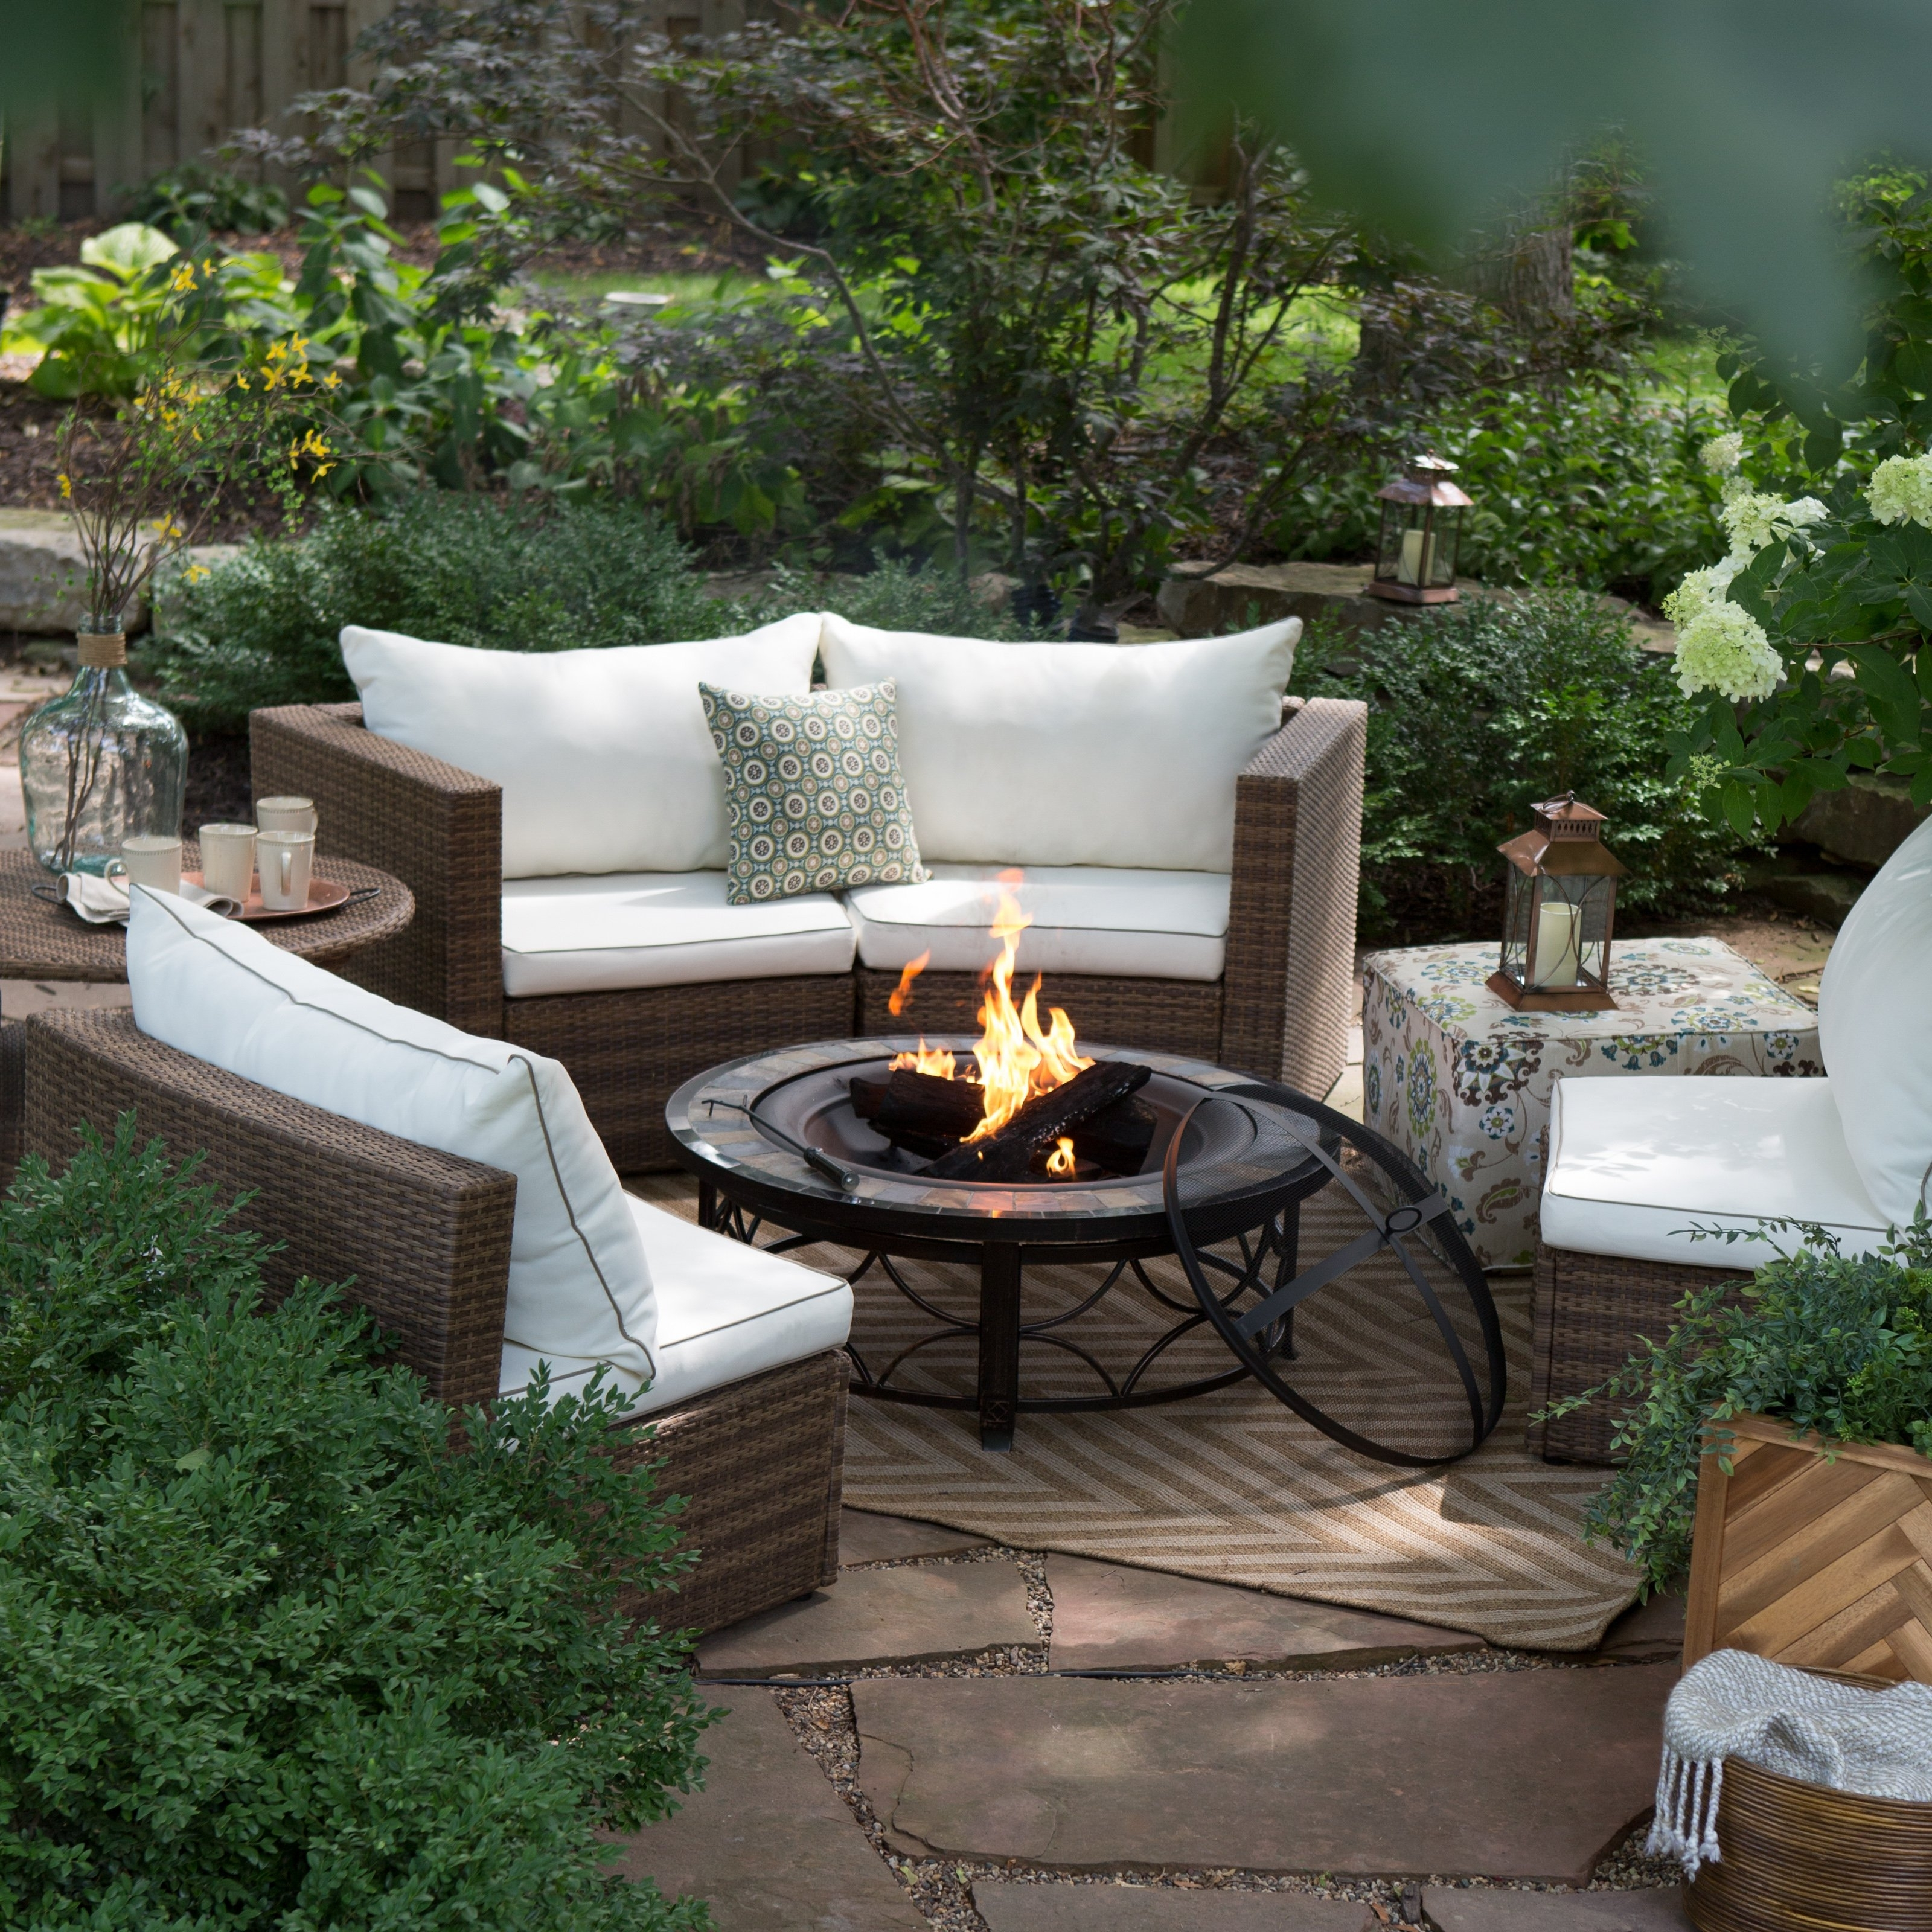 Patio Conversation Sets With Propane Fire Pit Within Trendy Decoration : Fire Pit Chairs Fire Pit Set Outdoor Propane Fire Pit (View 15 of 15)